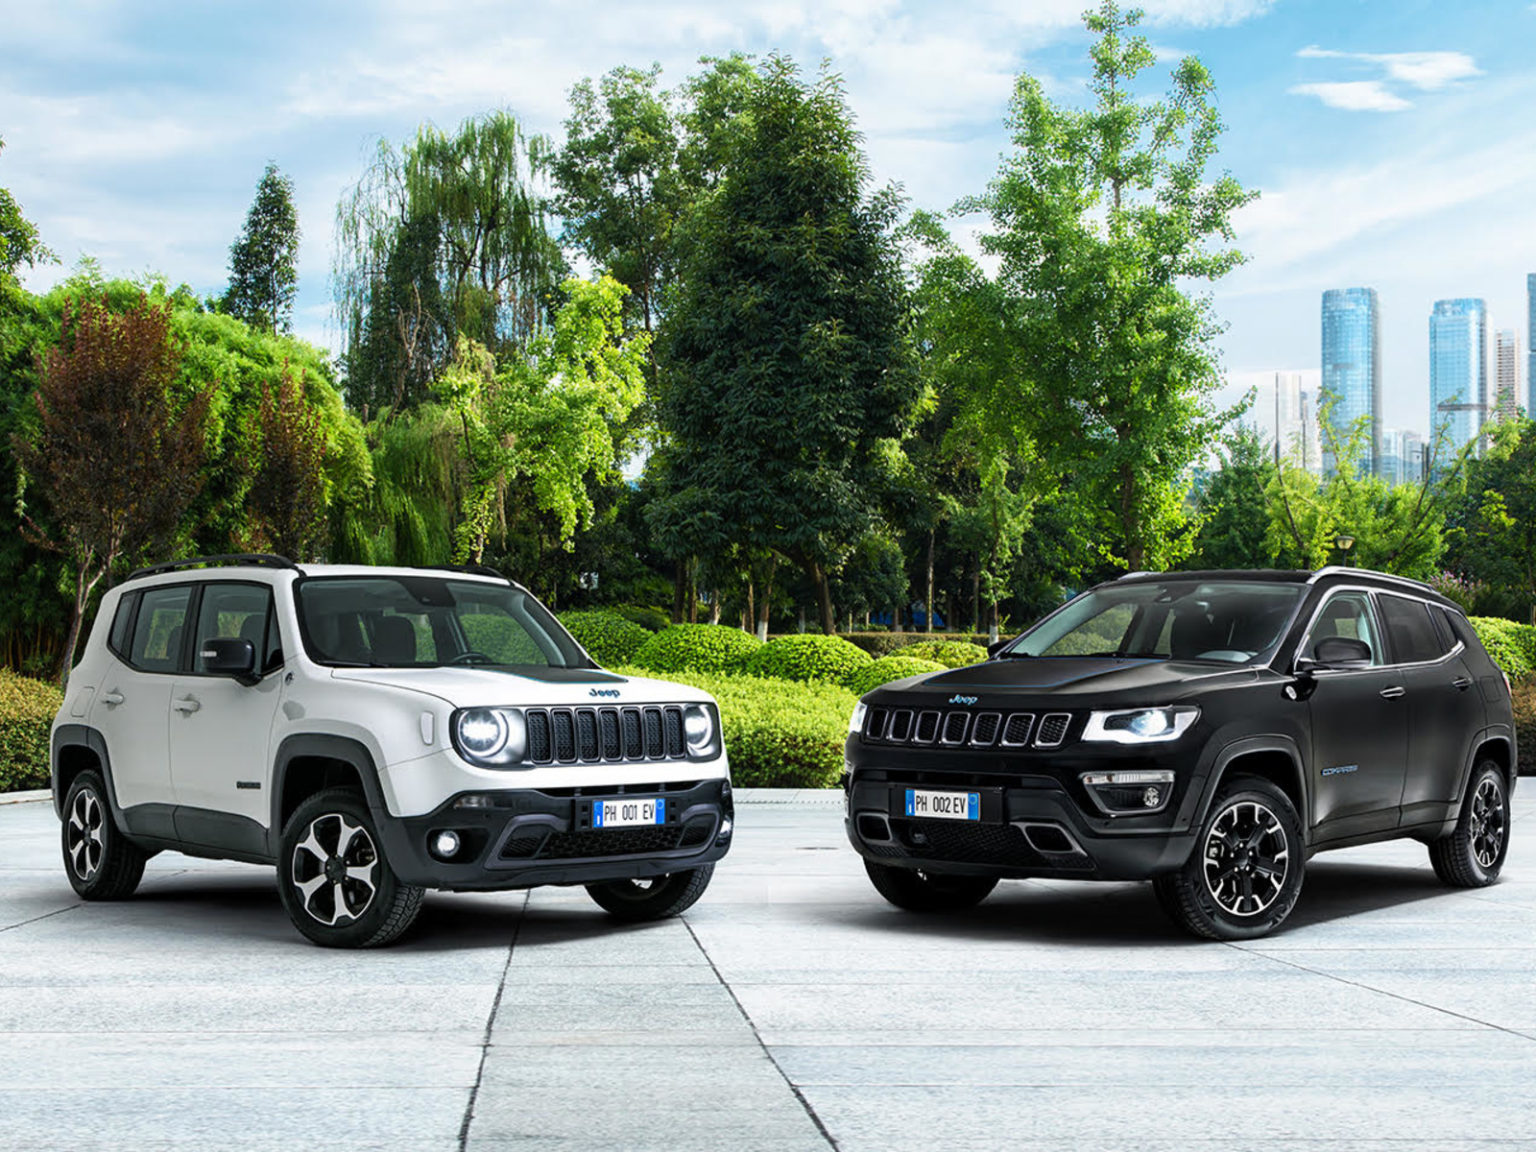 Jeep Compass 4xe Jeep Renegade 4xe jeep-compass-jeep-renegade_13-1536x1152